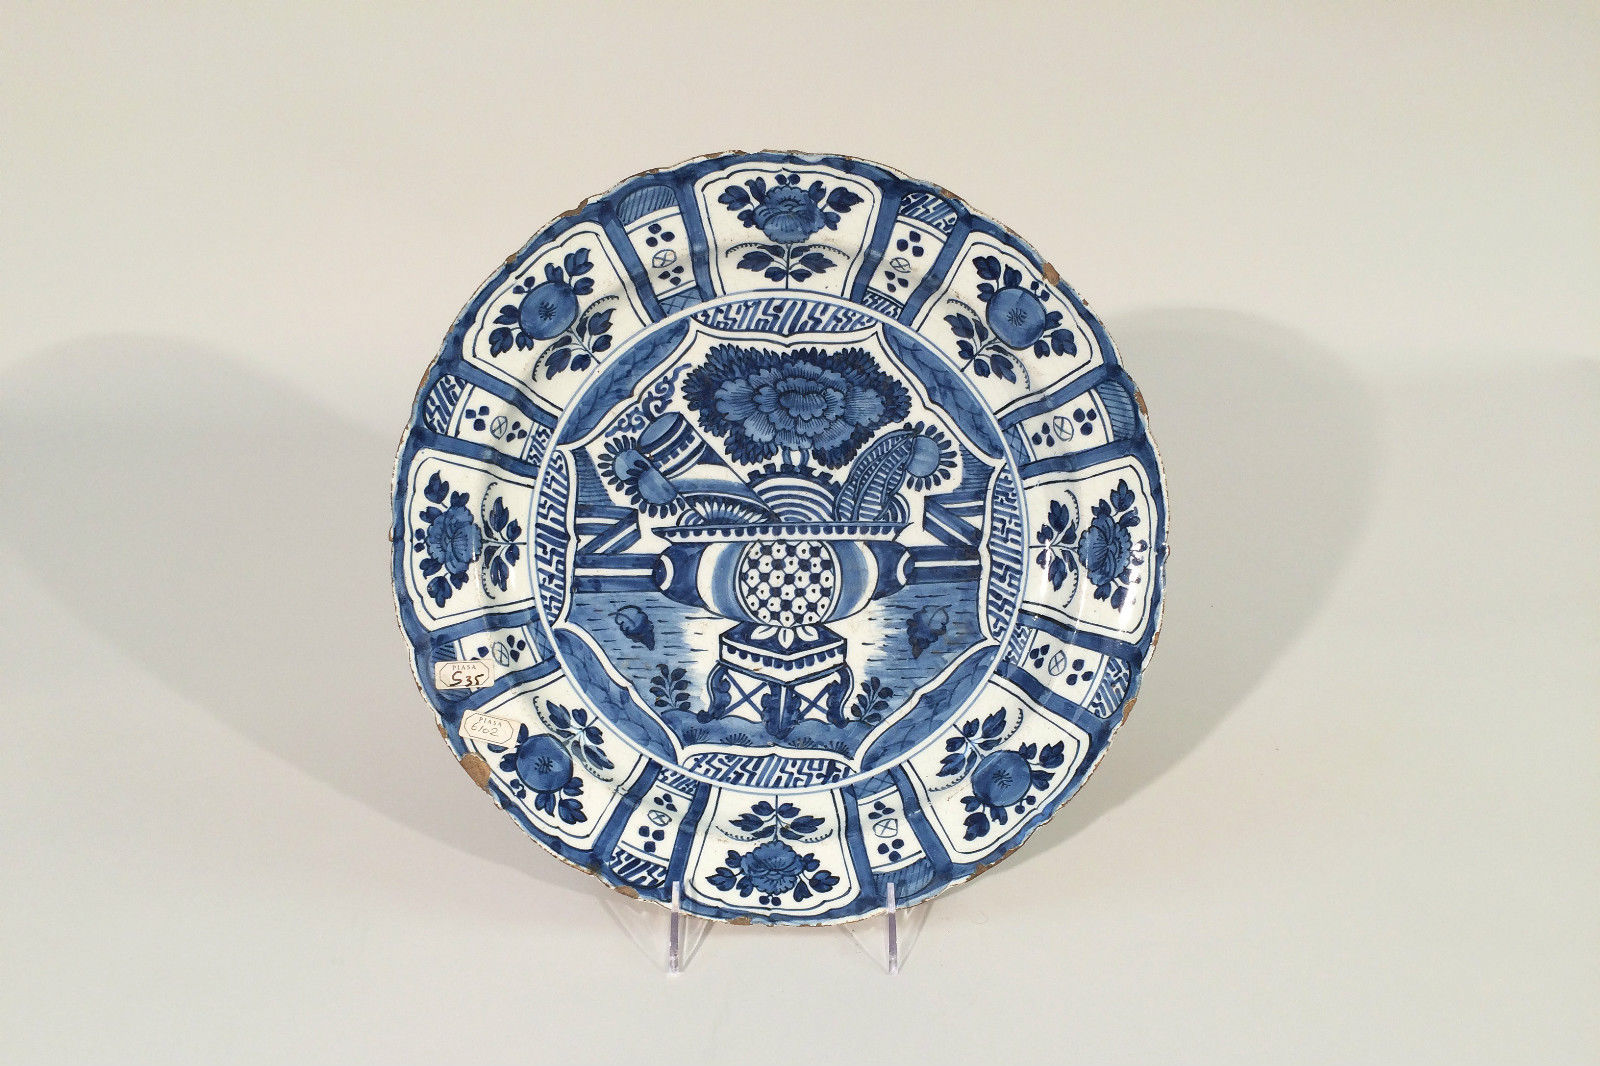 Delft Blue and White Pottery Charger with Japanese Motif